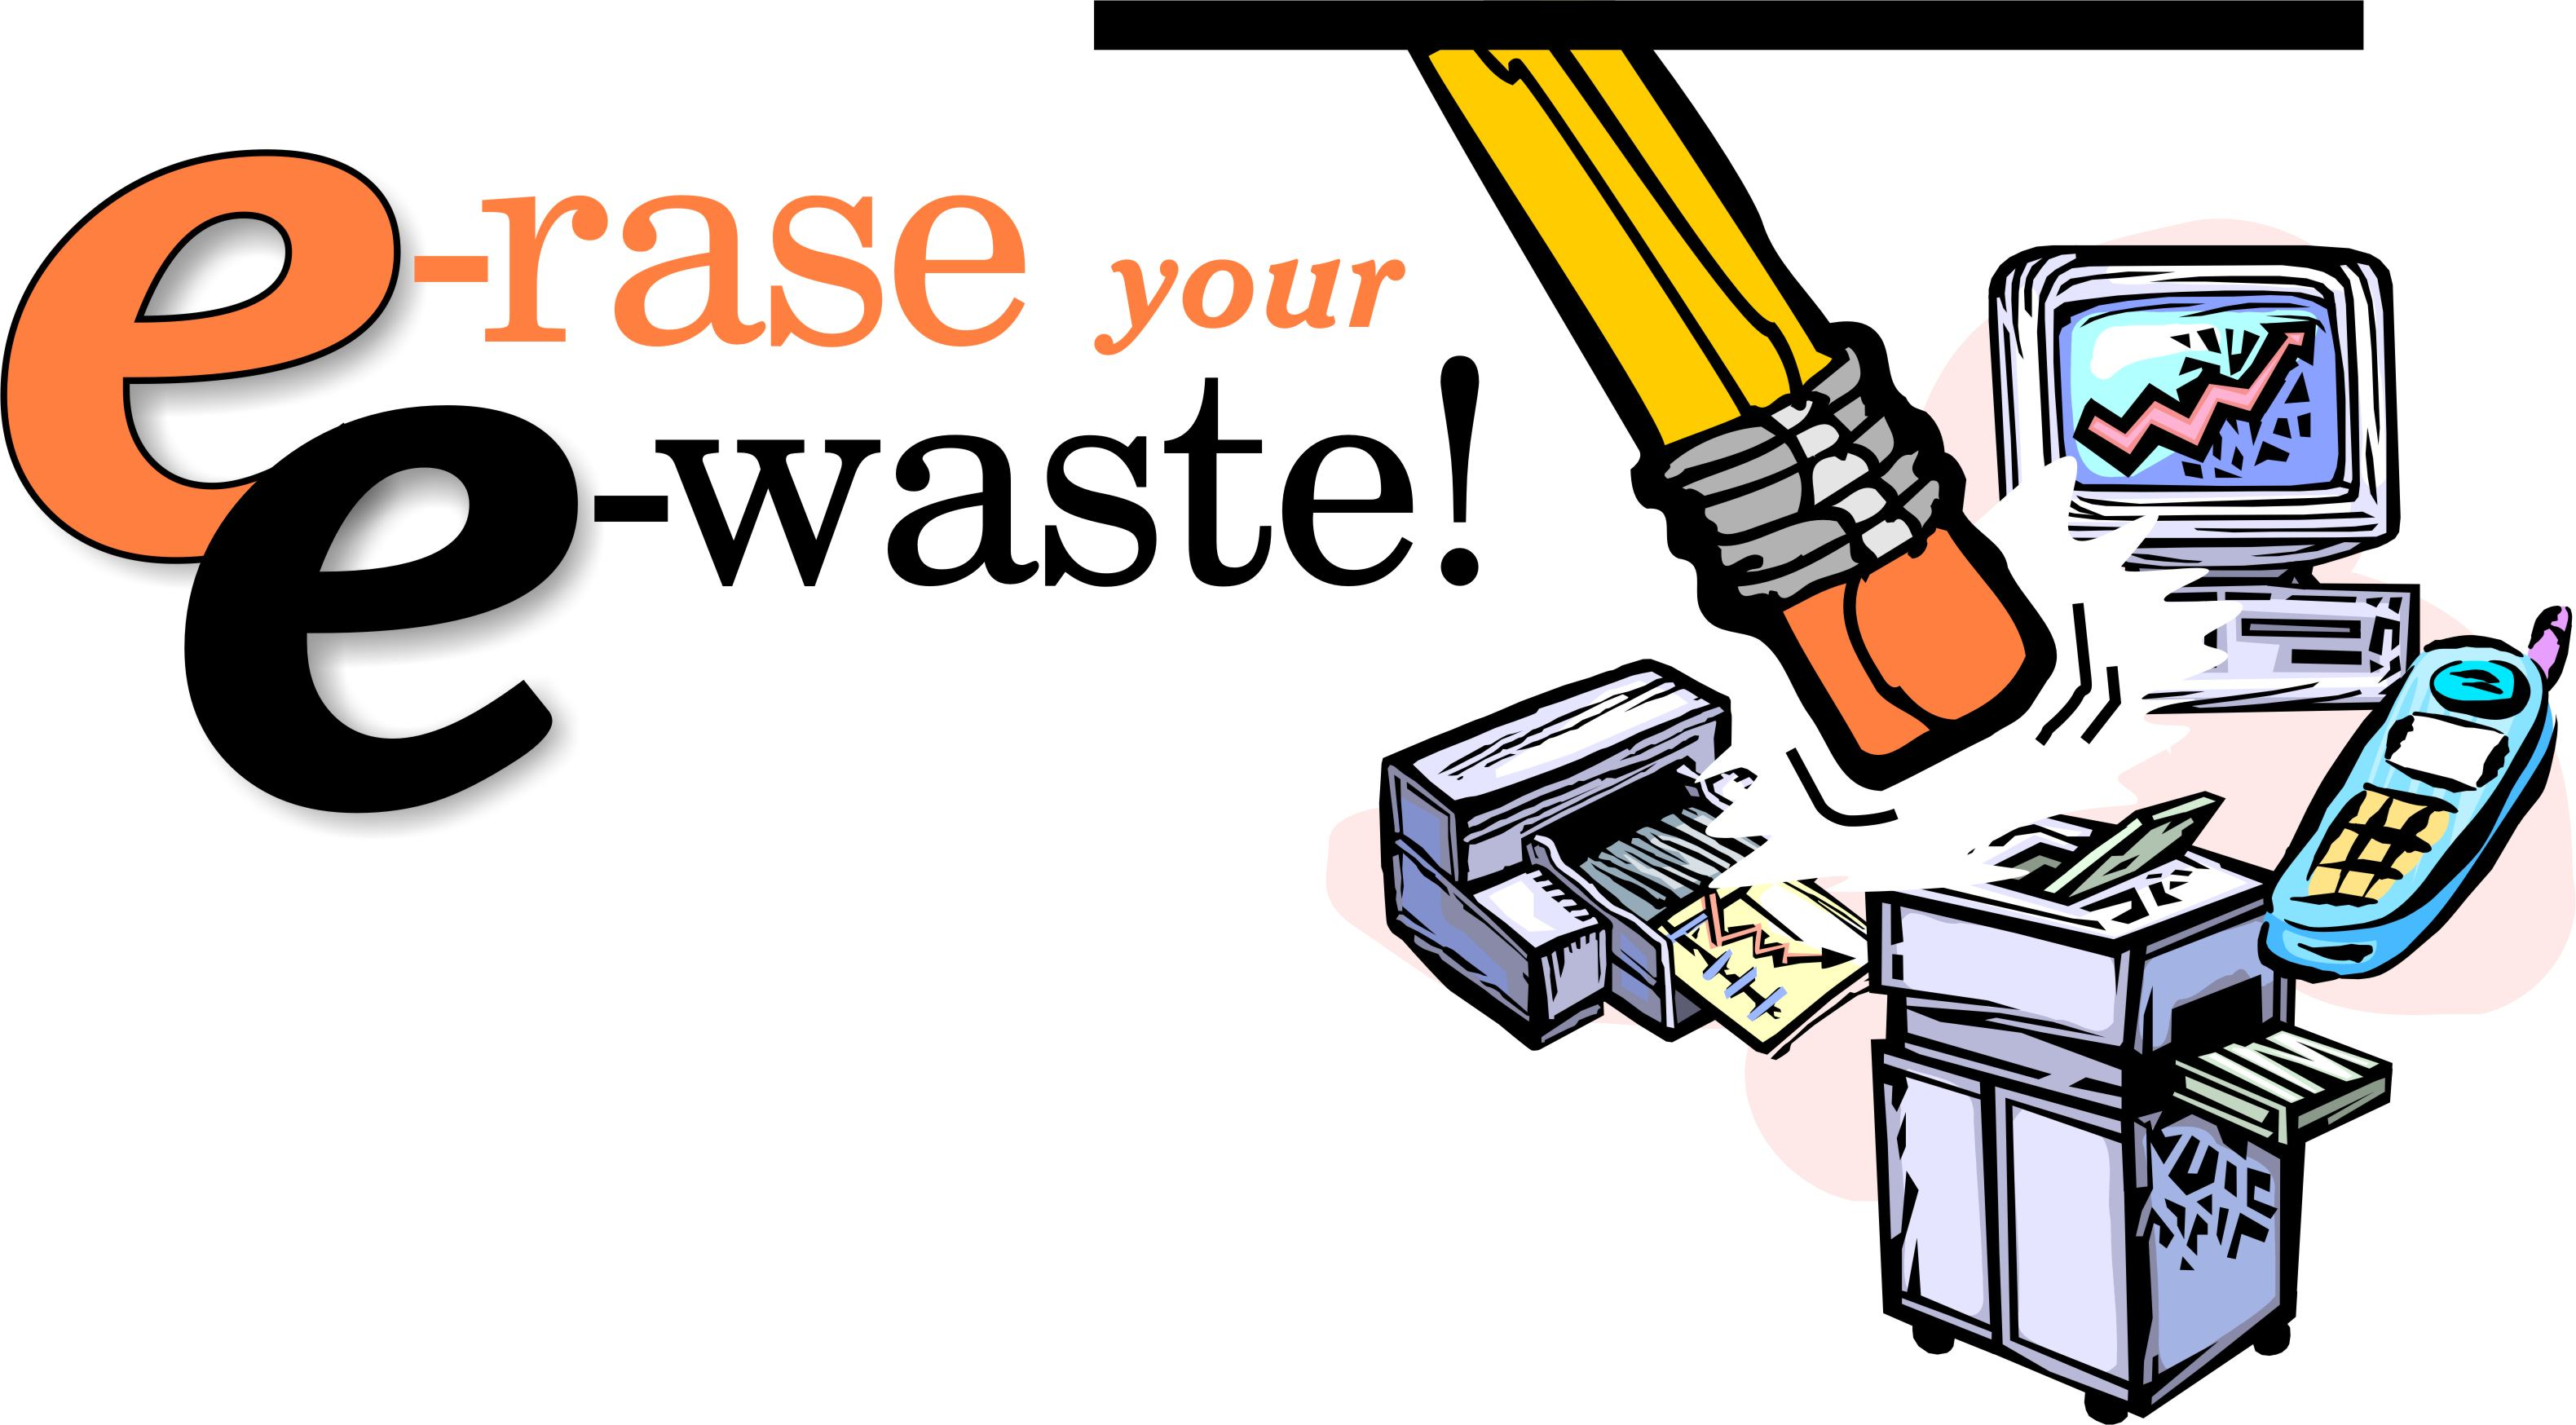 Pollution clipart agricultural waste #7